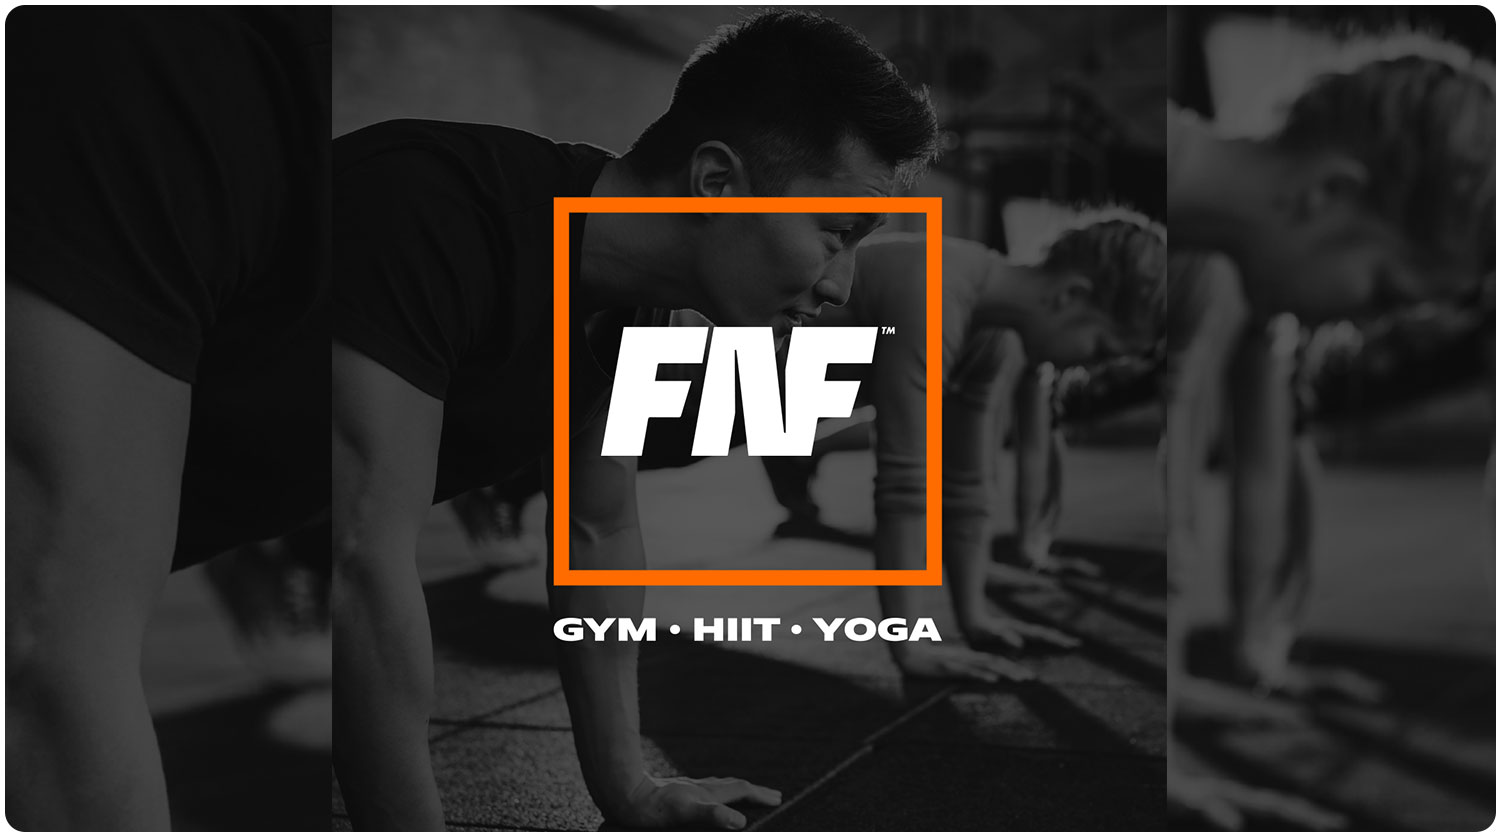 87% off – Experience Your Fitness, Your Way. It's only $14 for for 14 days unlimited Gym, HIIT and Yoga at Fit n Fast Liverpool St Sydney. Whether you are a new, a HIIT junkie or a Yogi, experience your workout your way. Normally $104.90 Save $90.90